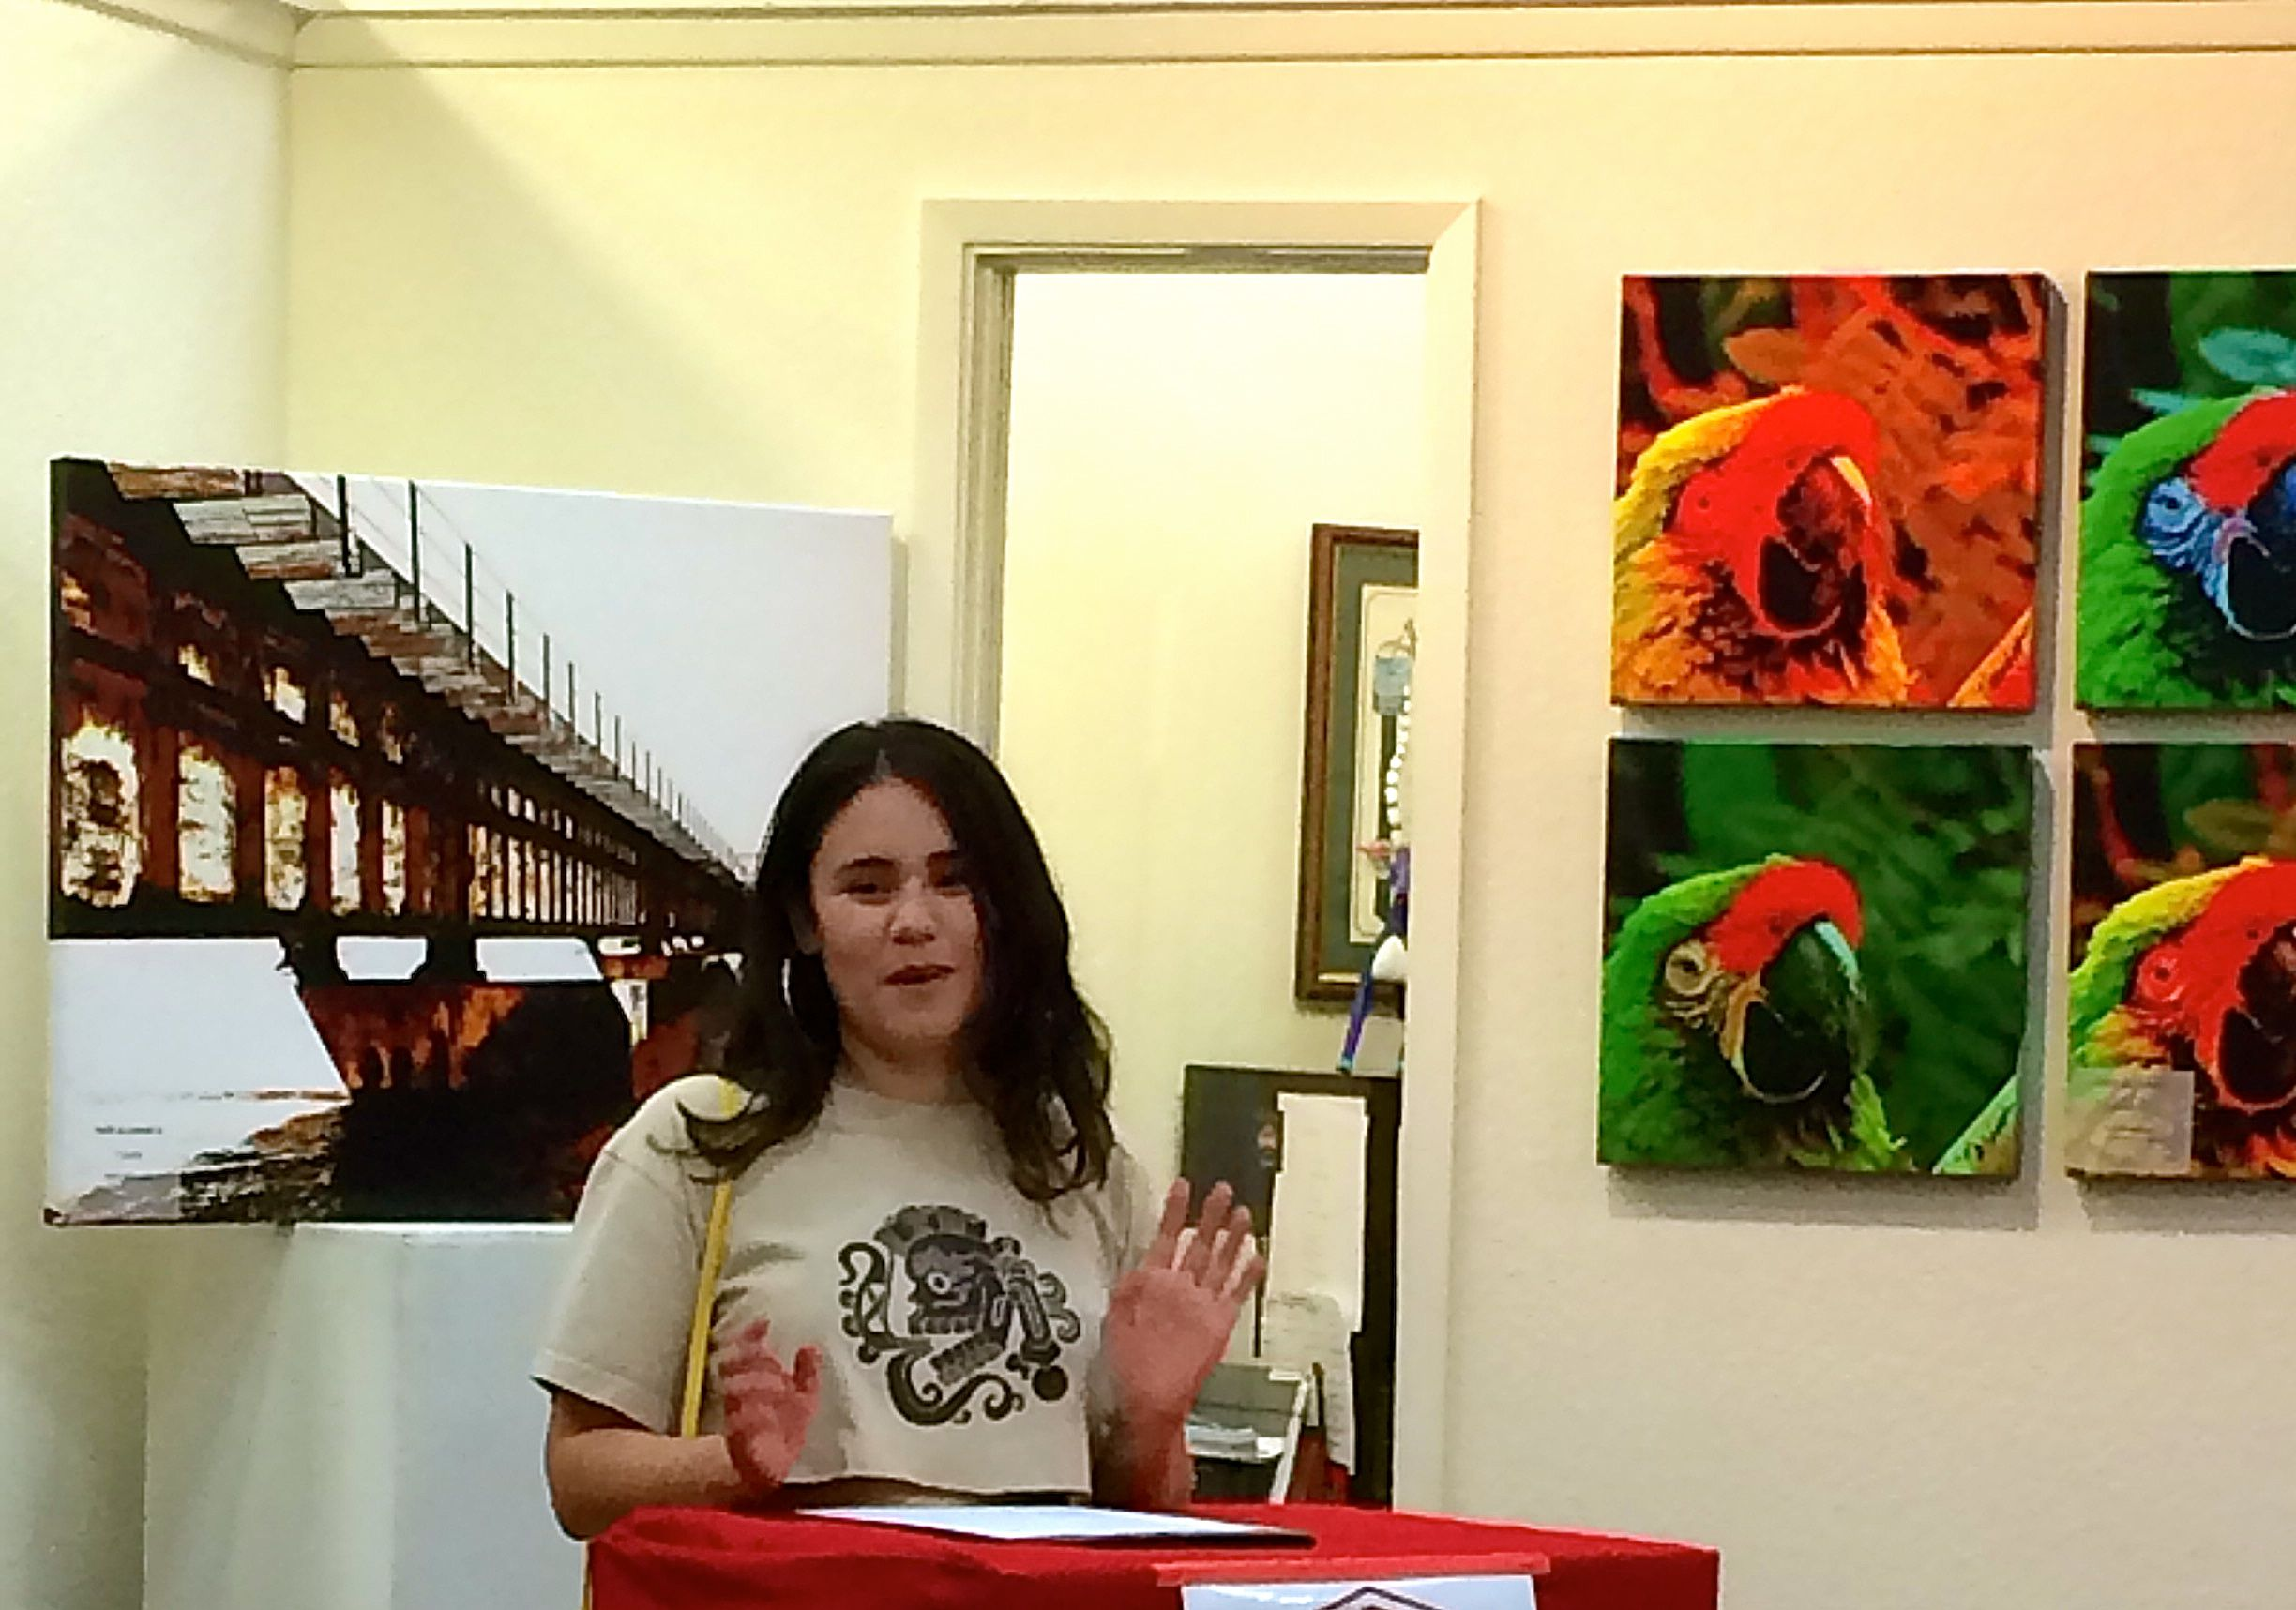 Mia at Fresno Poet Laureate Reading, June 2015.